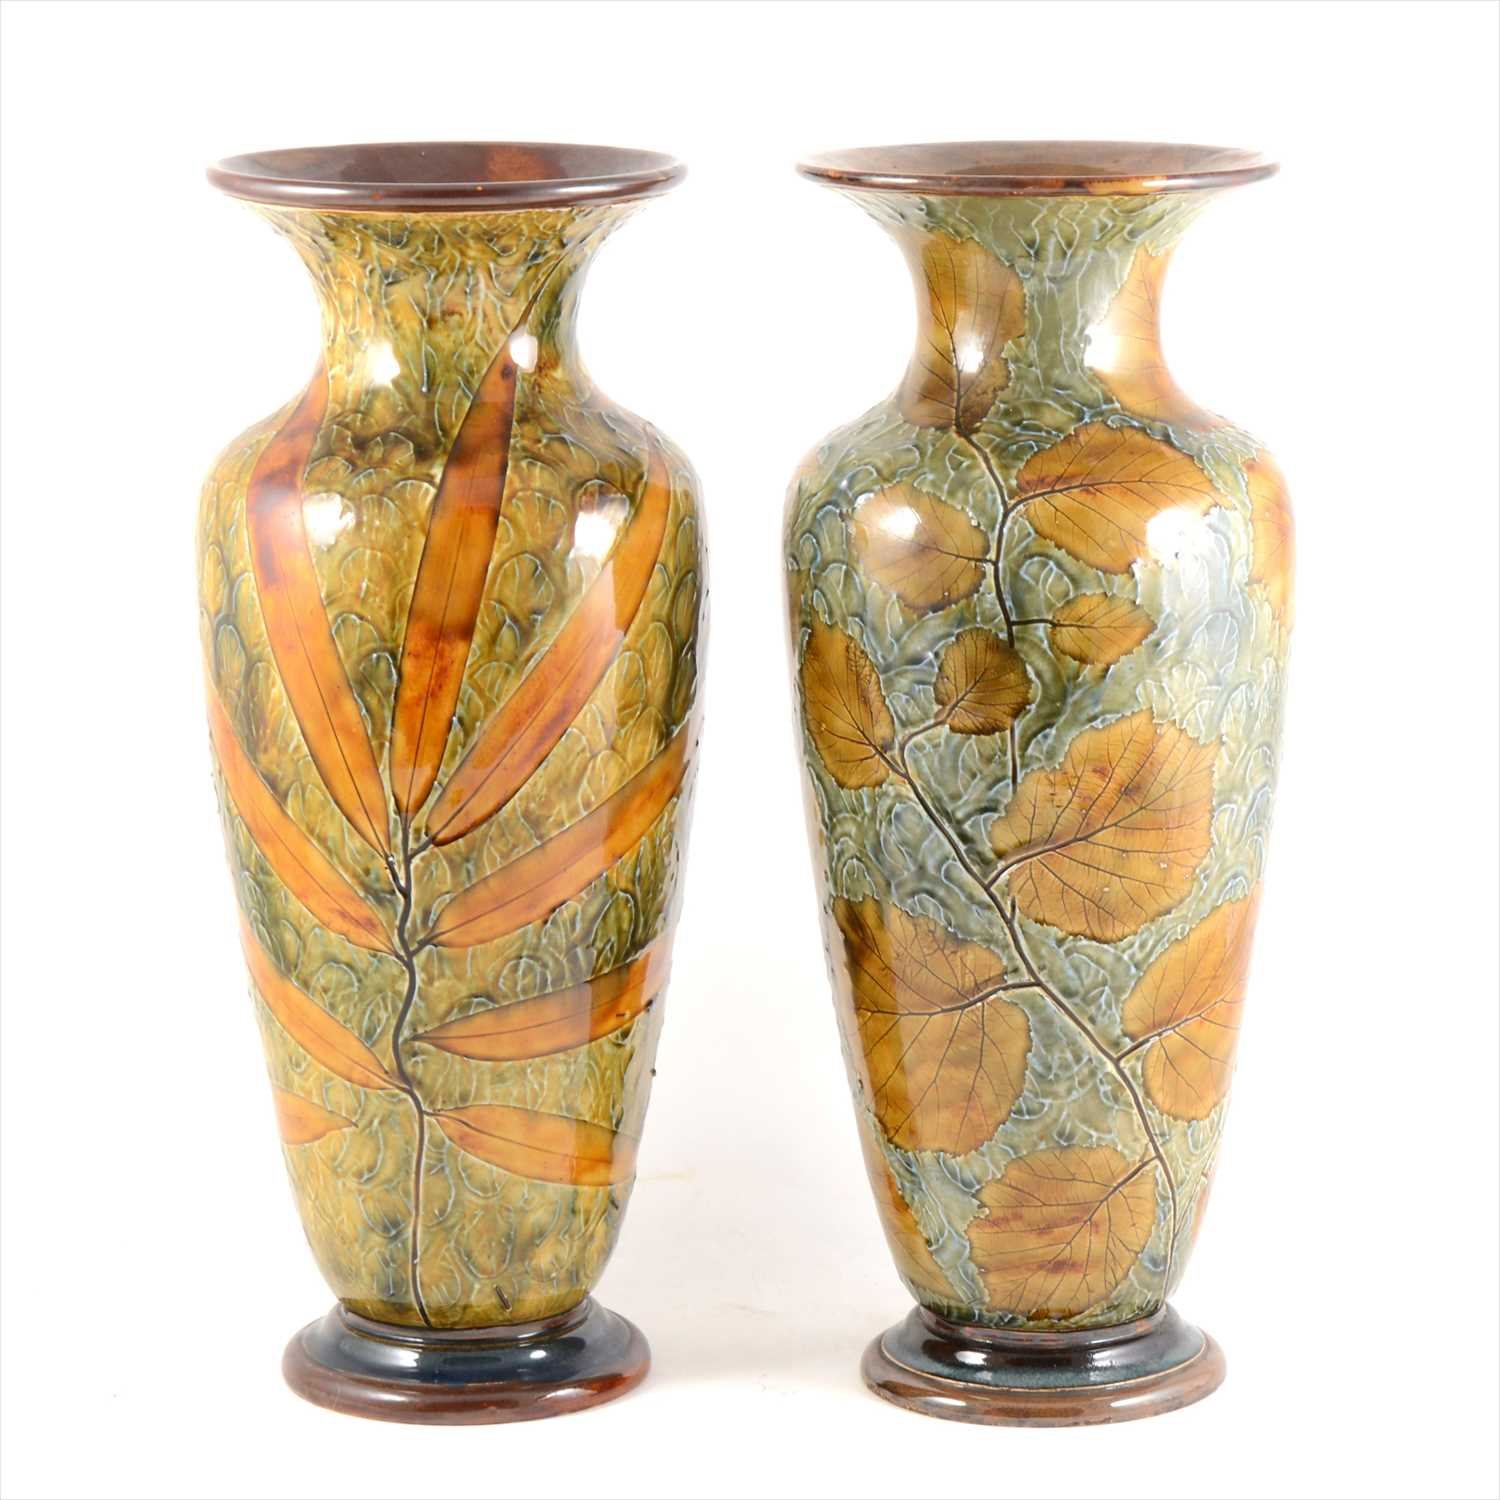 Lot 27-A large pair of Doulton Lambeth stoneware 'Autumn Leaves' vases